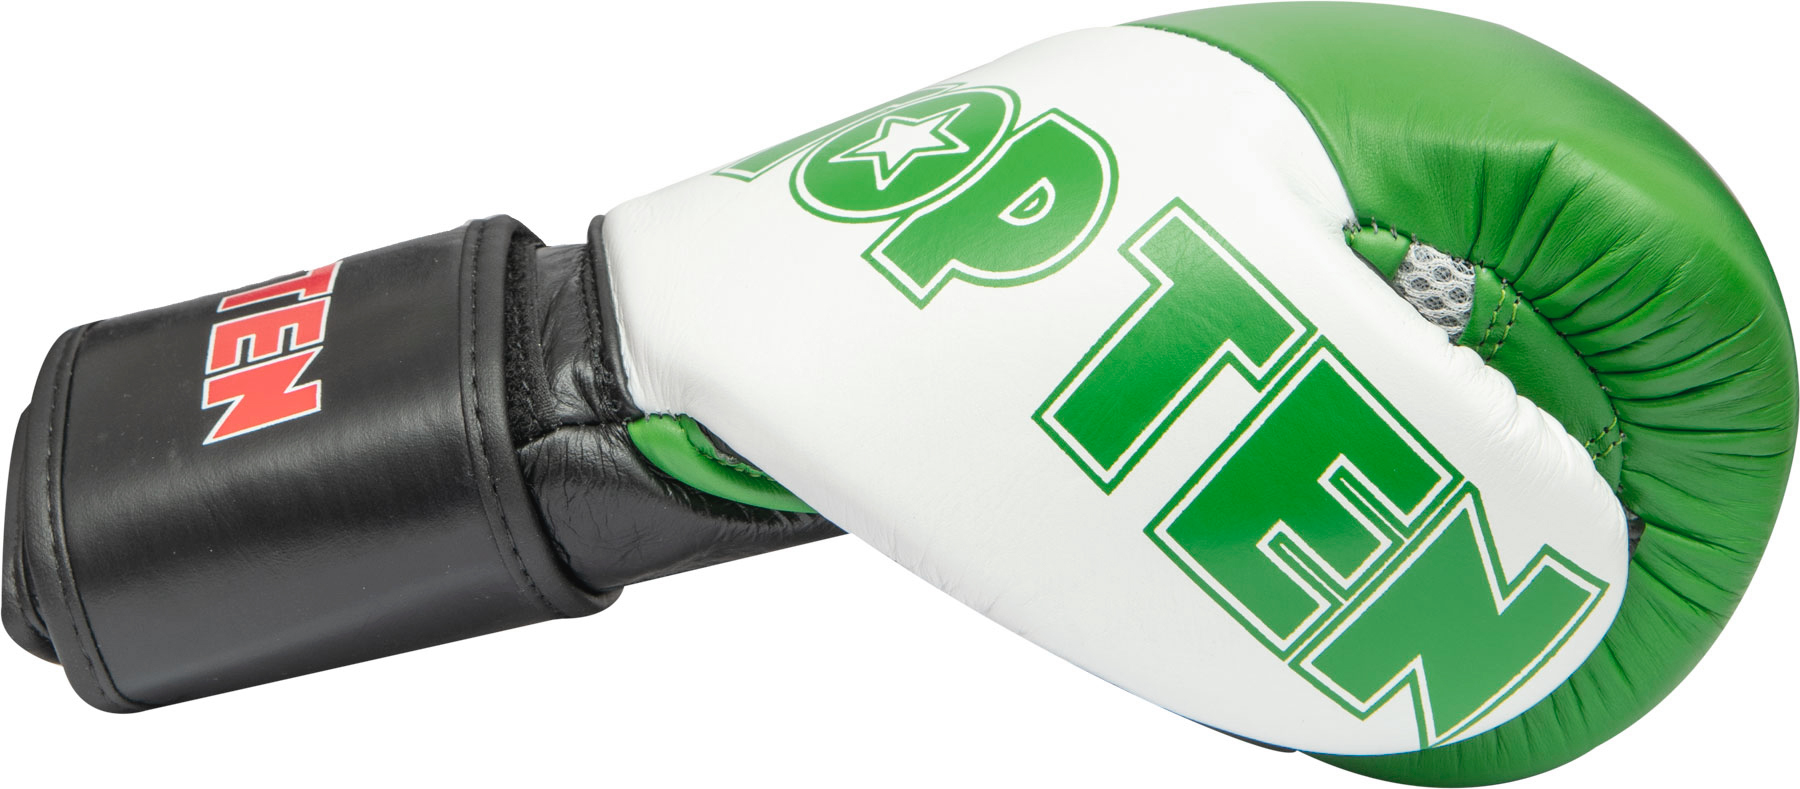 top-ten-boxing-gloves-sparring-x-2067-green-side_3